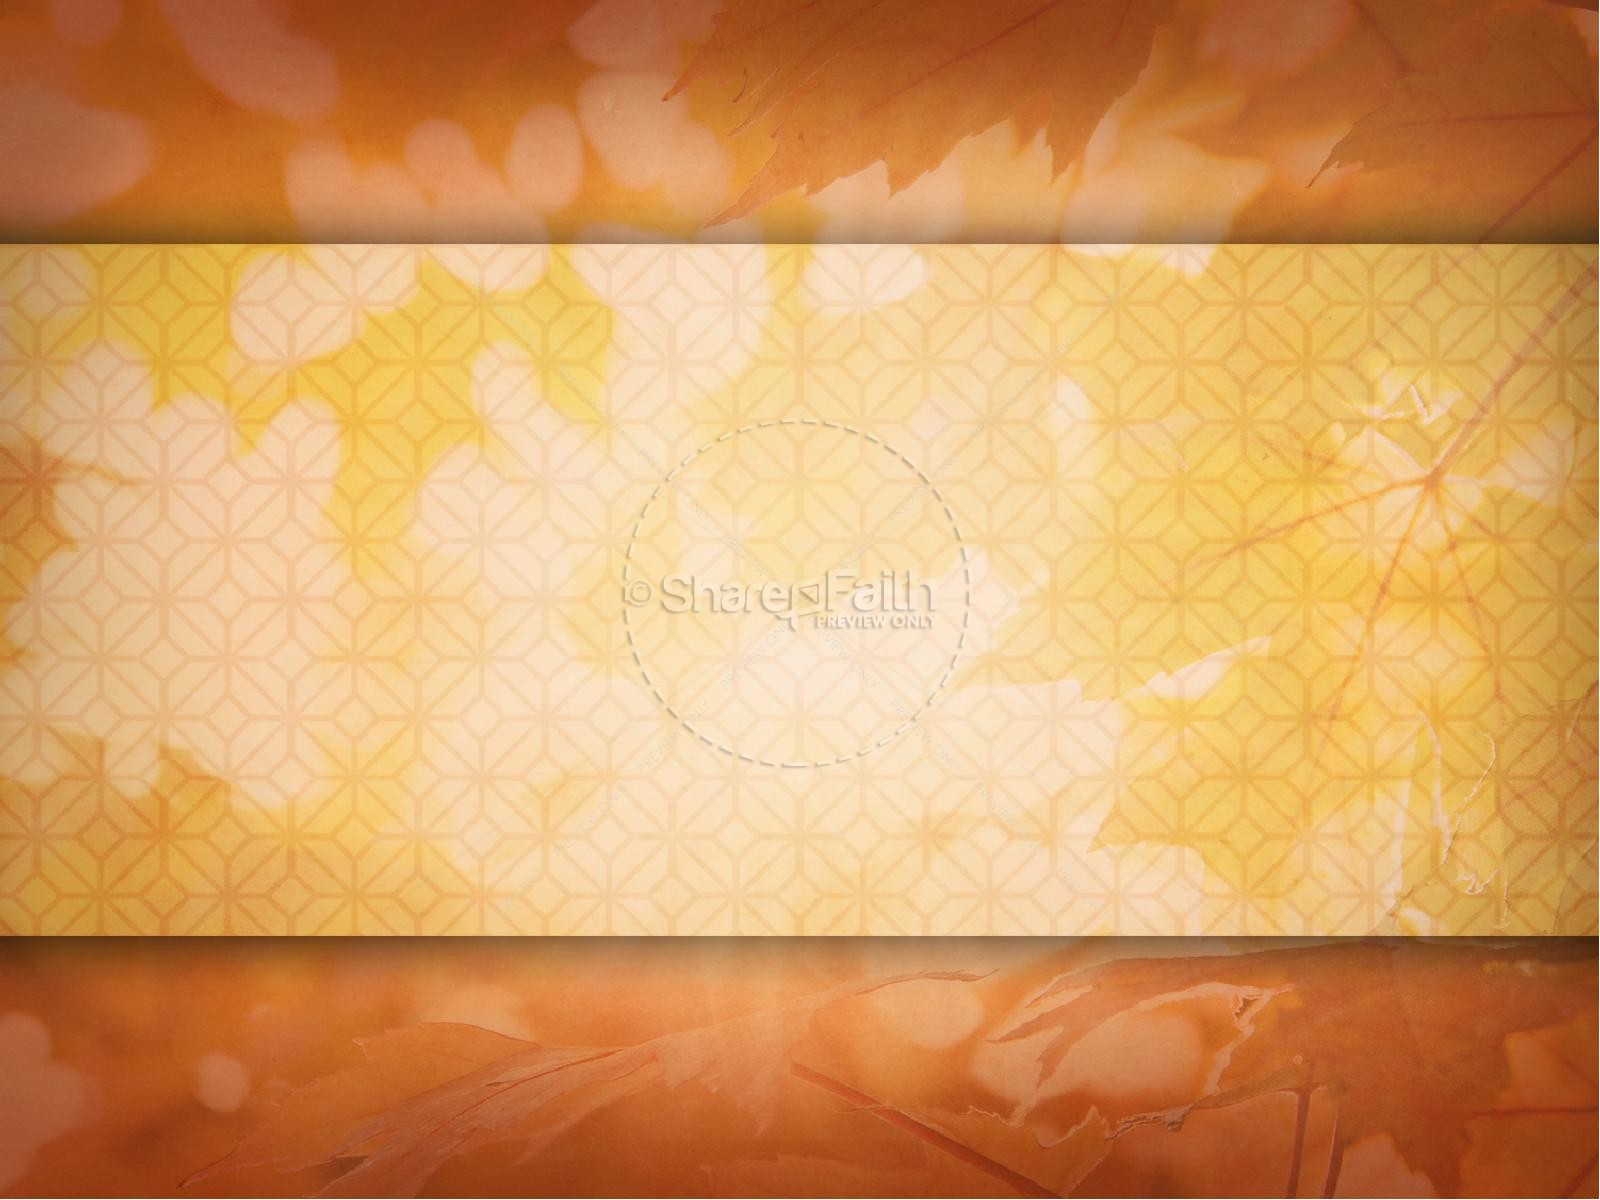 Falling Leaves Live Wallpaper Hd Pastor Appreciation Day Christian Powerpoint Fall